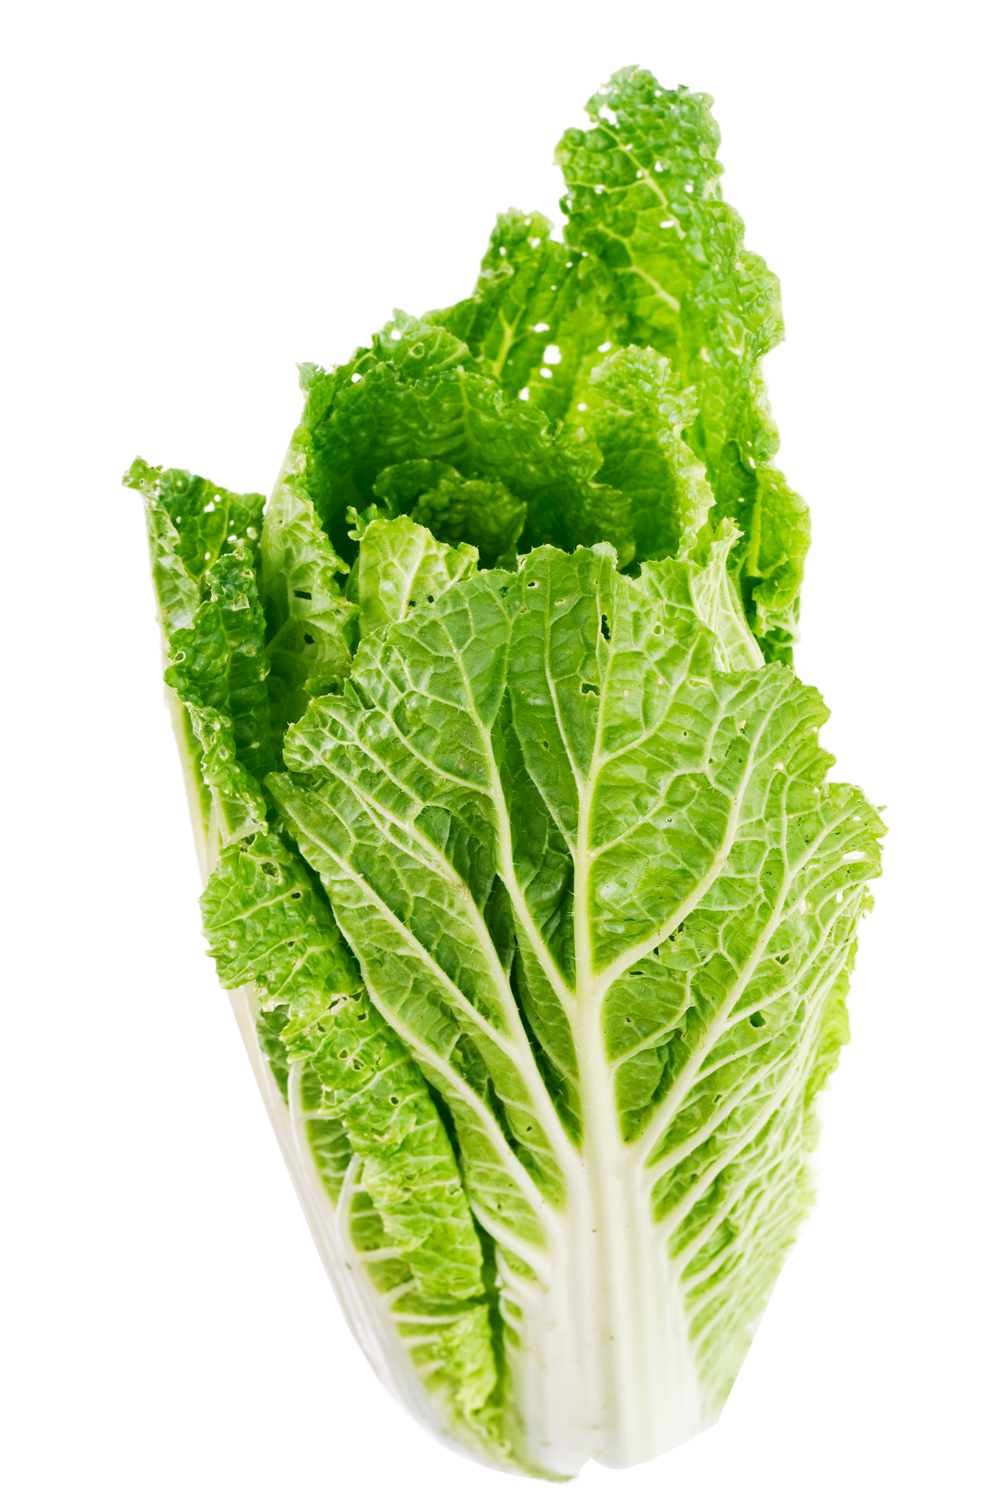 Lettuce Leaves Png Free Lettuce Leaves Png Transparent Images 163786 Pngio